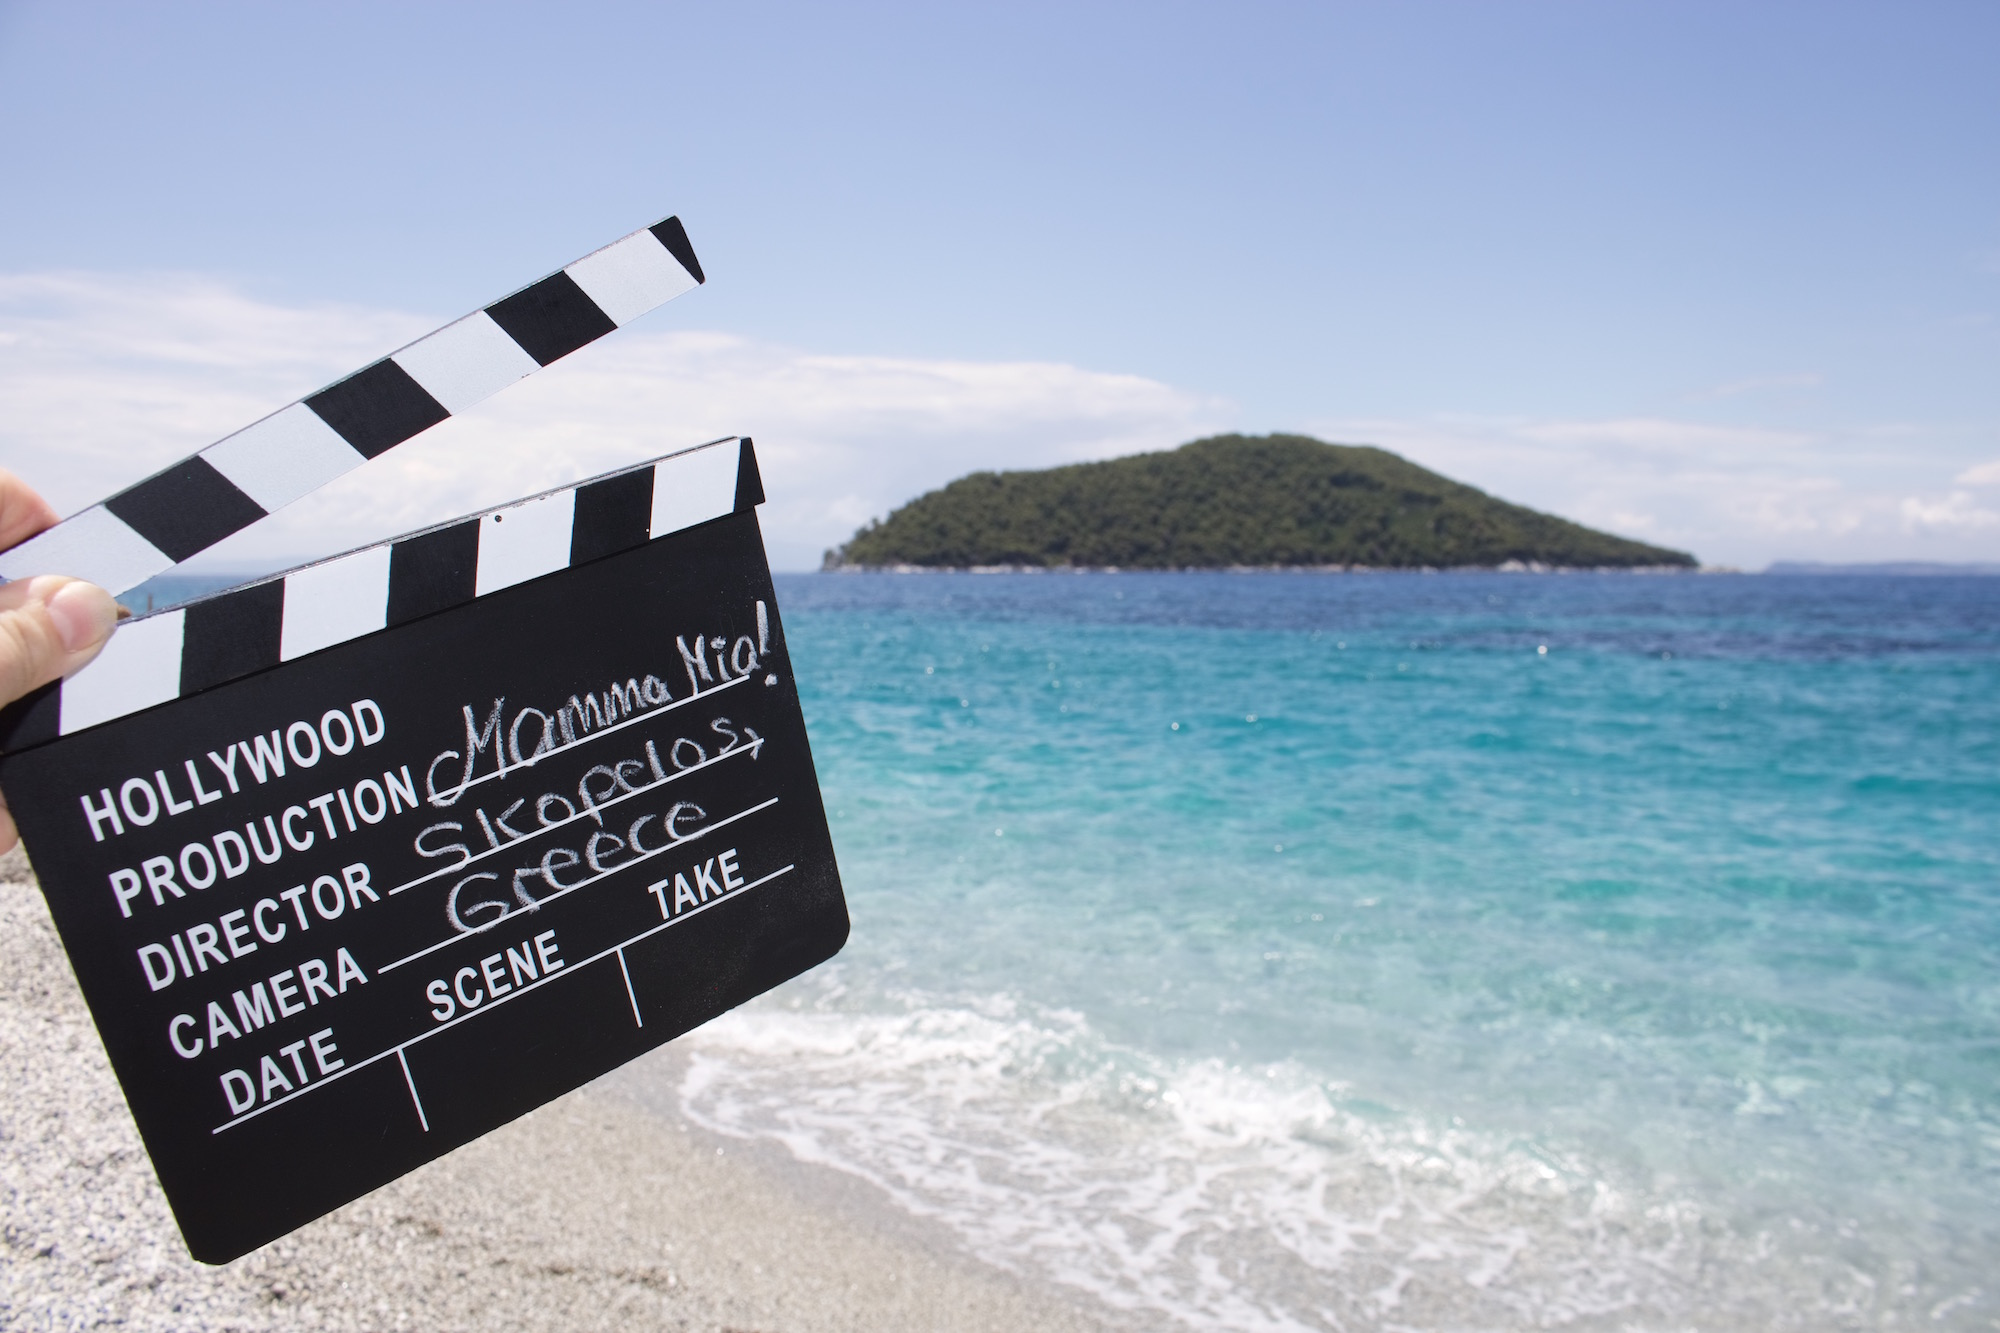 Mamma Mia Film Locations Tour On Skopelos Island Filmfantravel Com